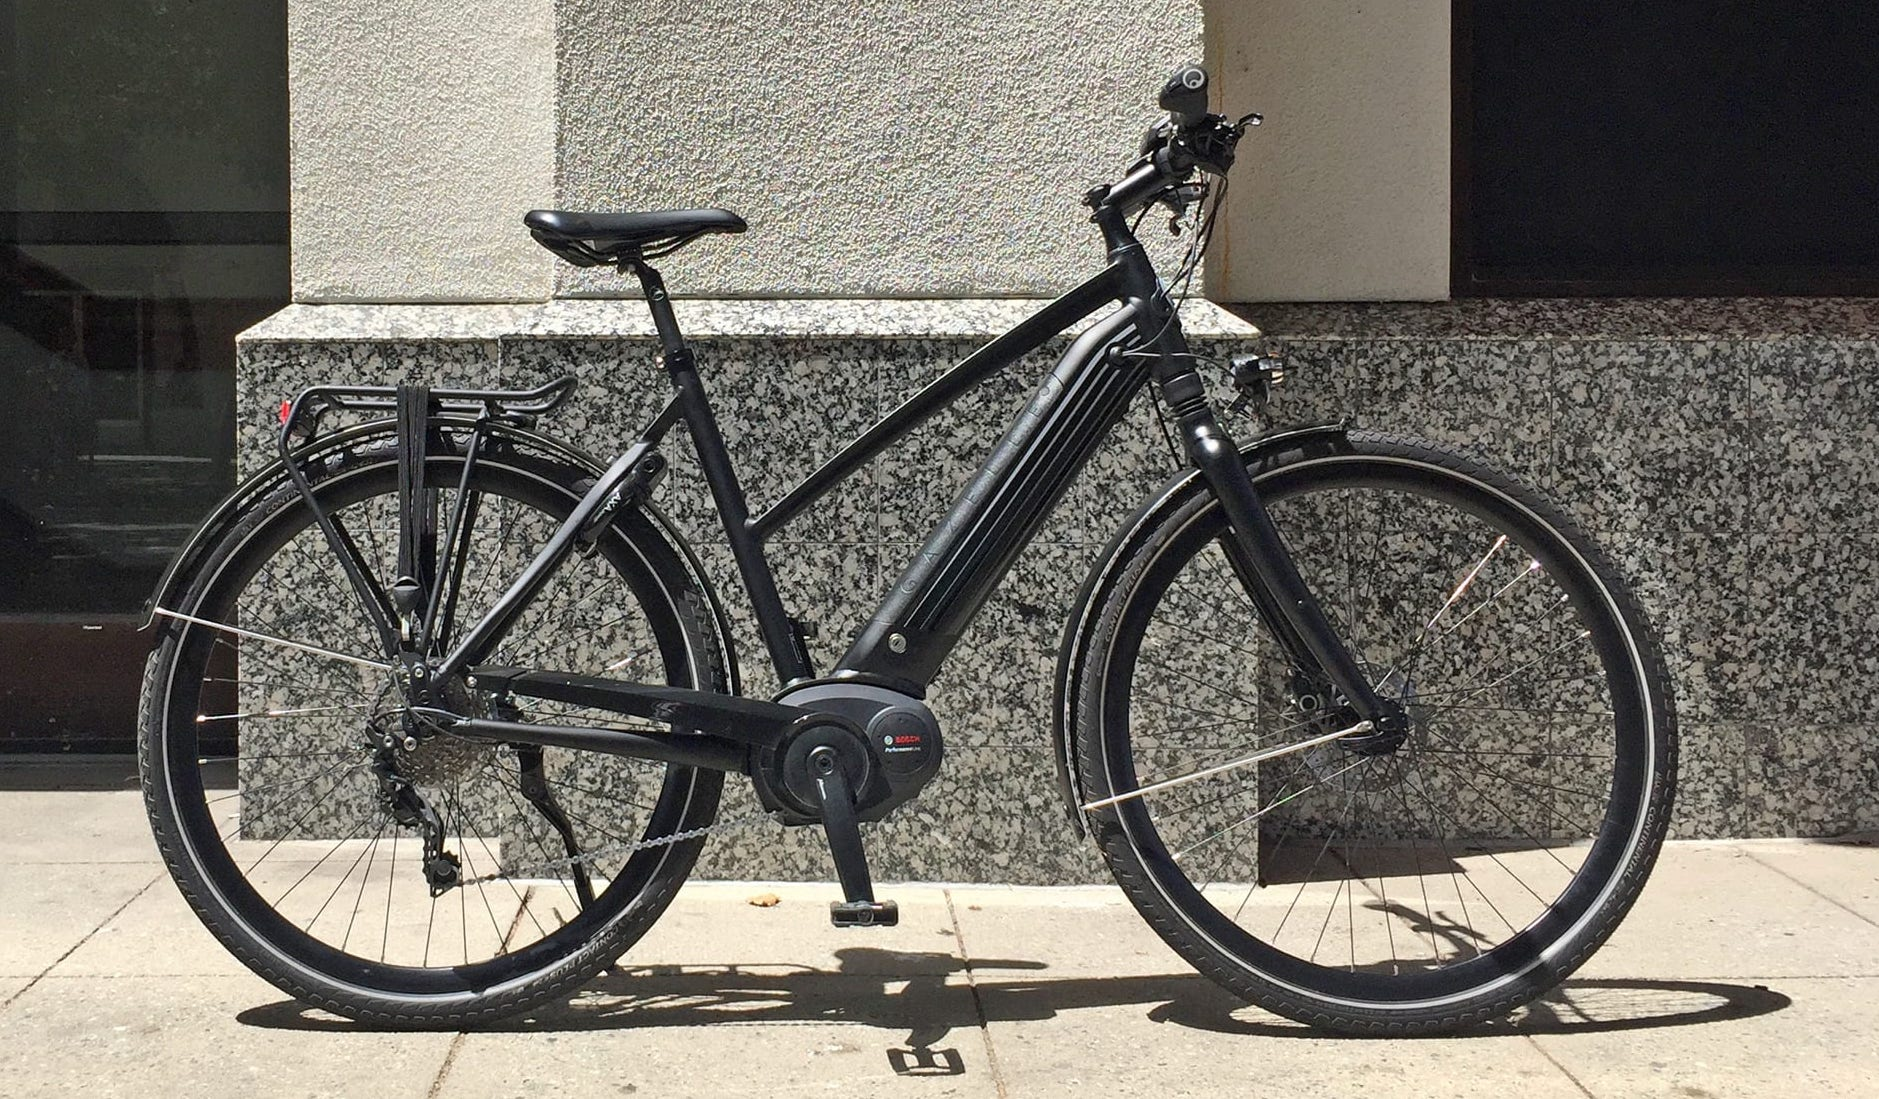 8 Surprising Things I Learned After Testing An Electric Bike For A